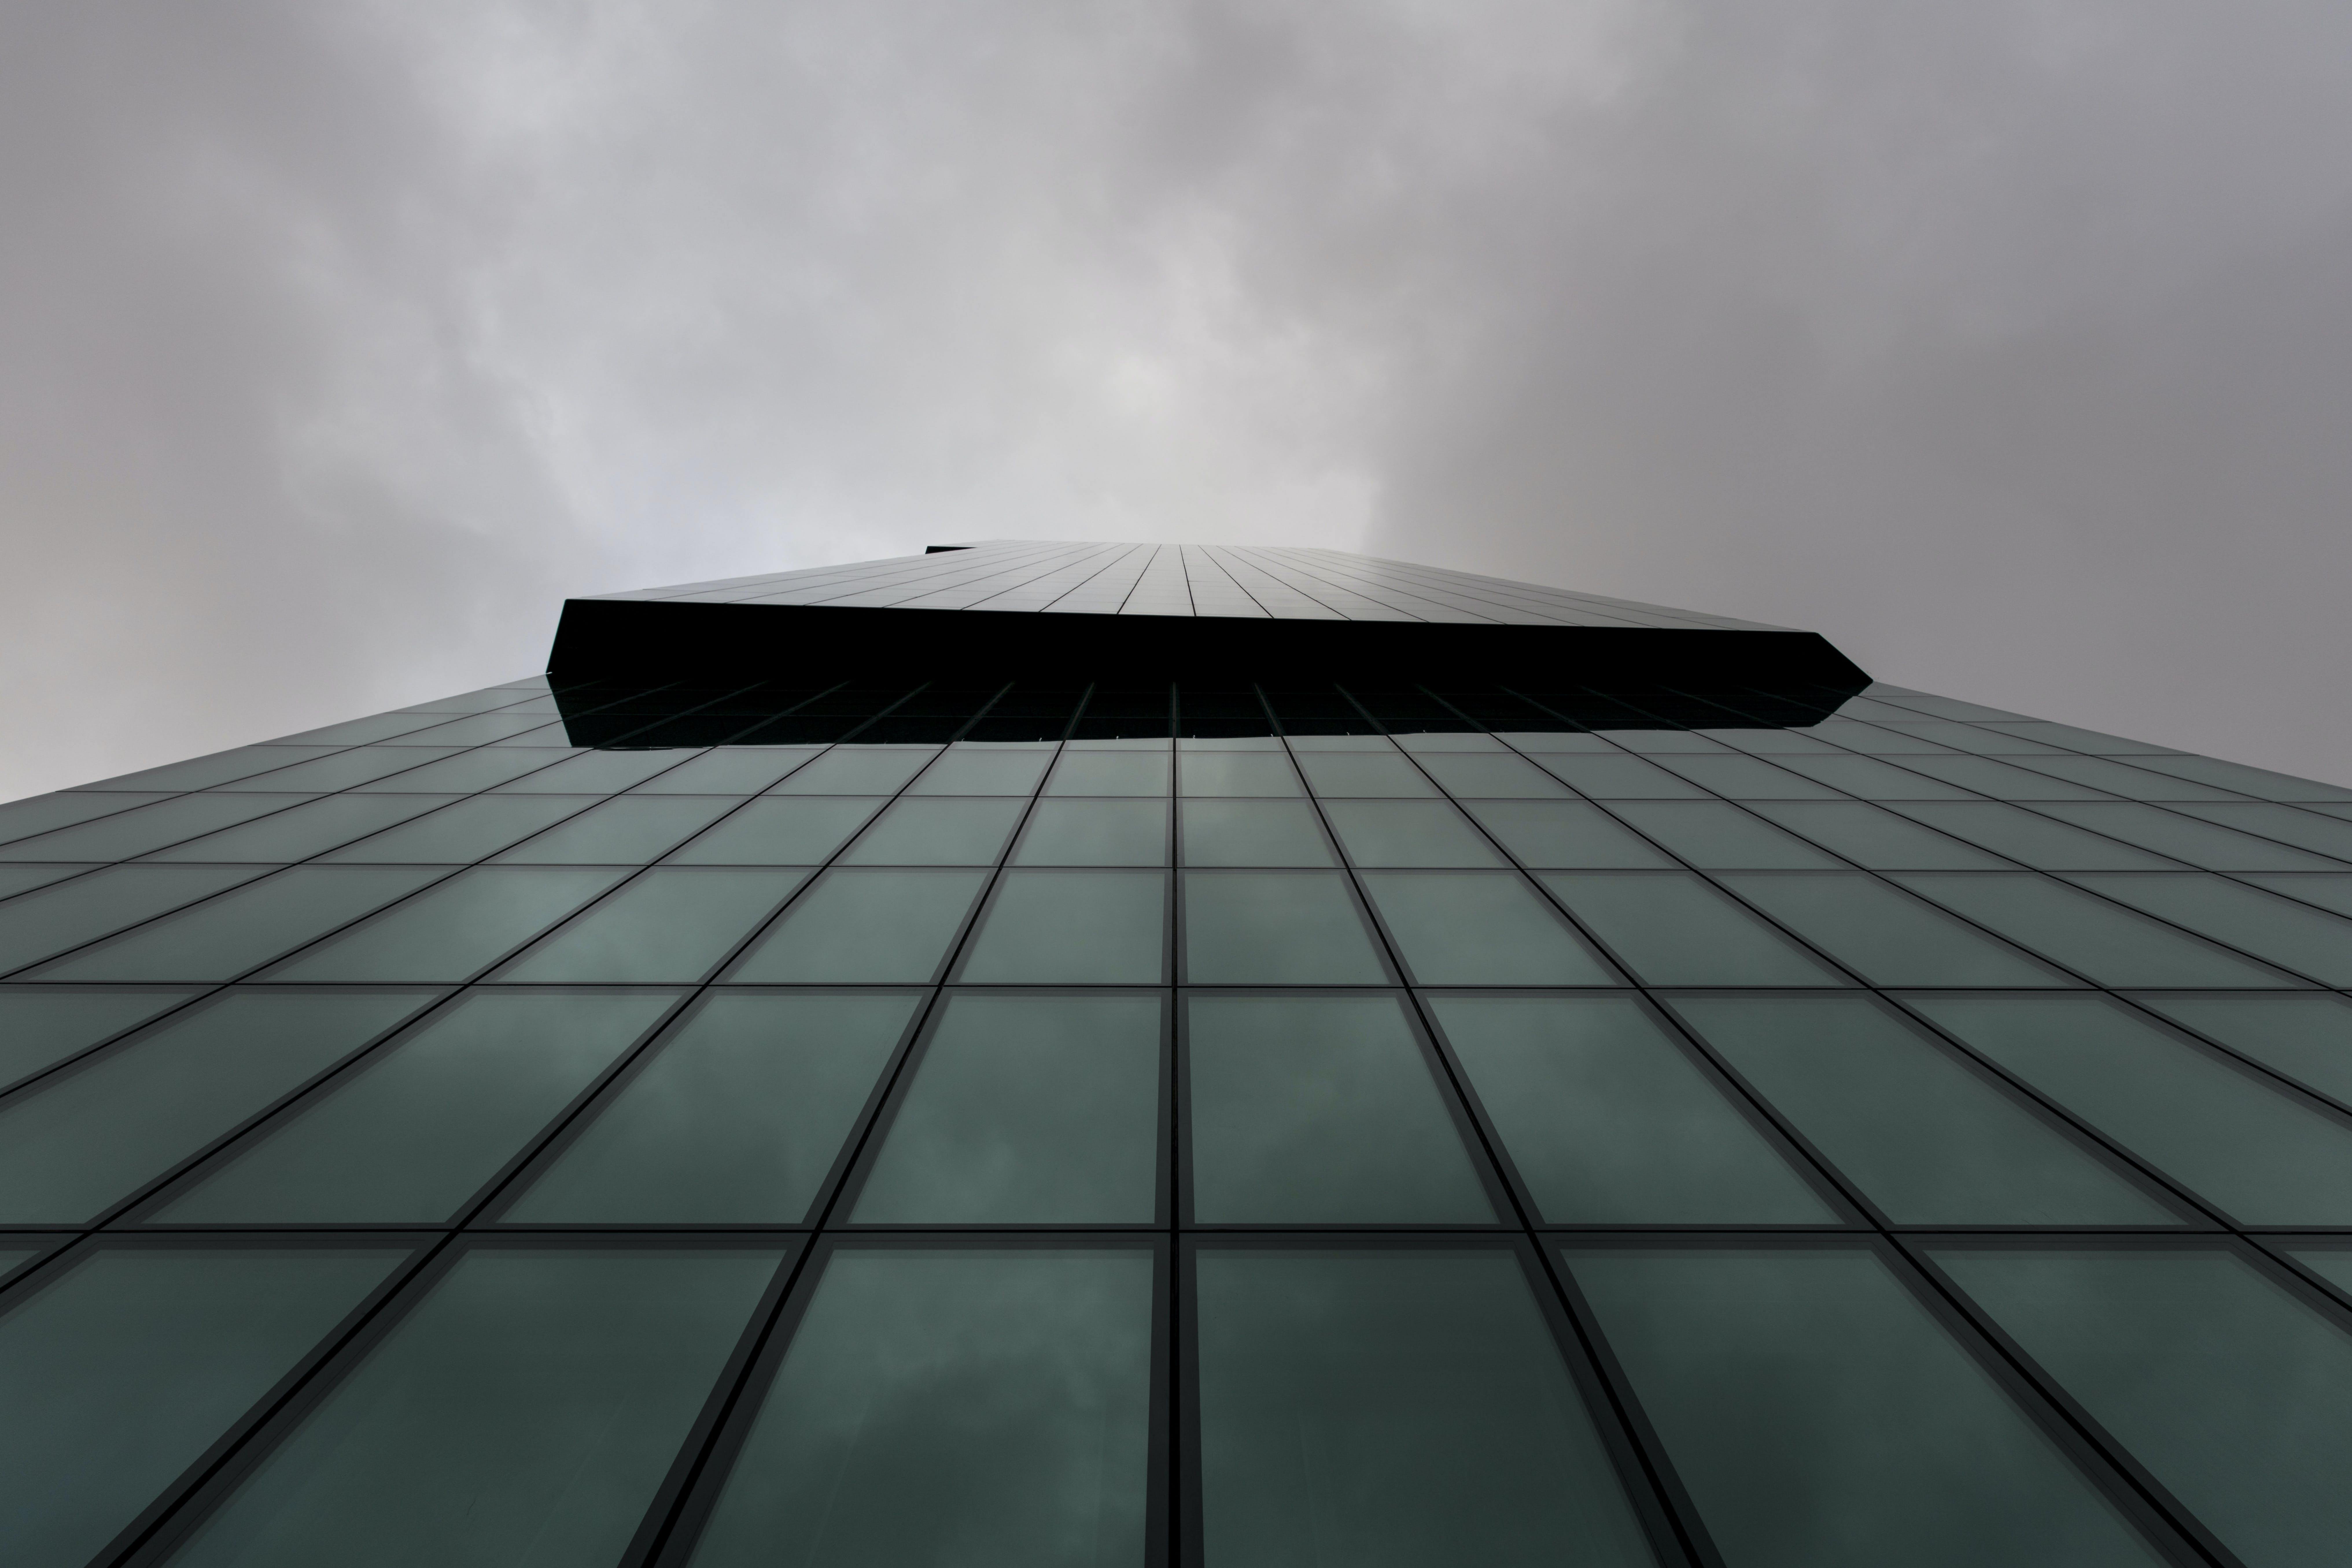 Free stock photo of cloudy, glass, high-rise, slice